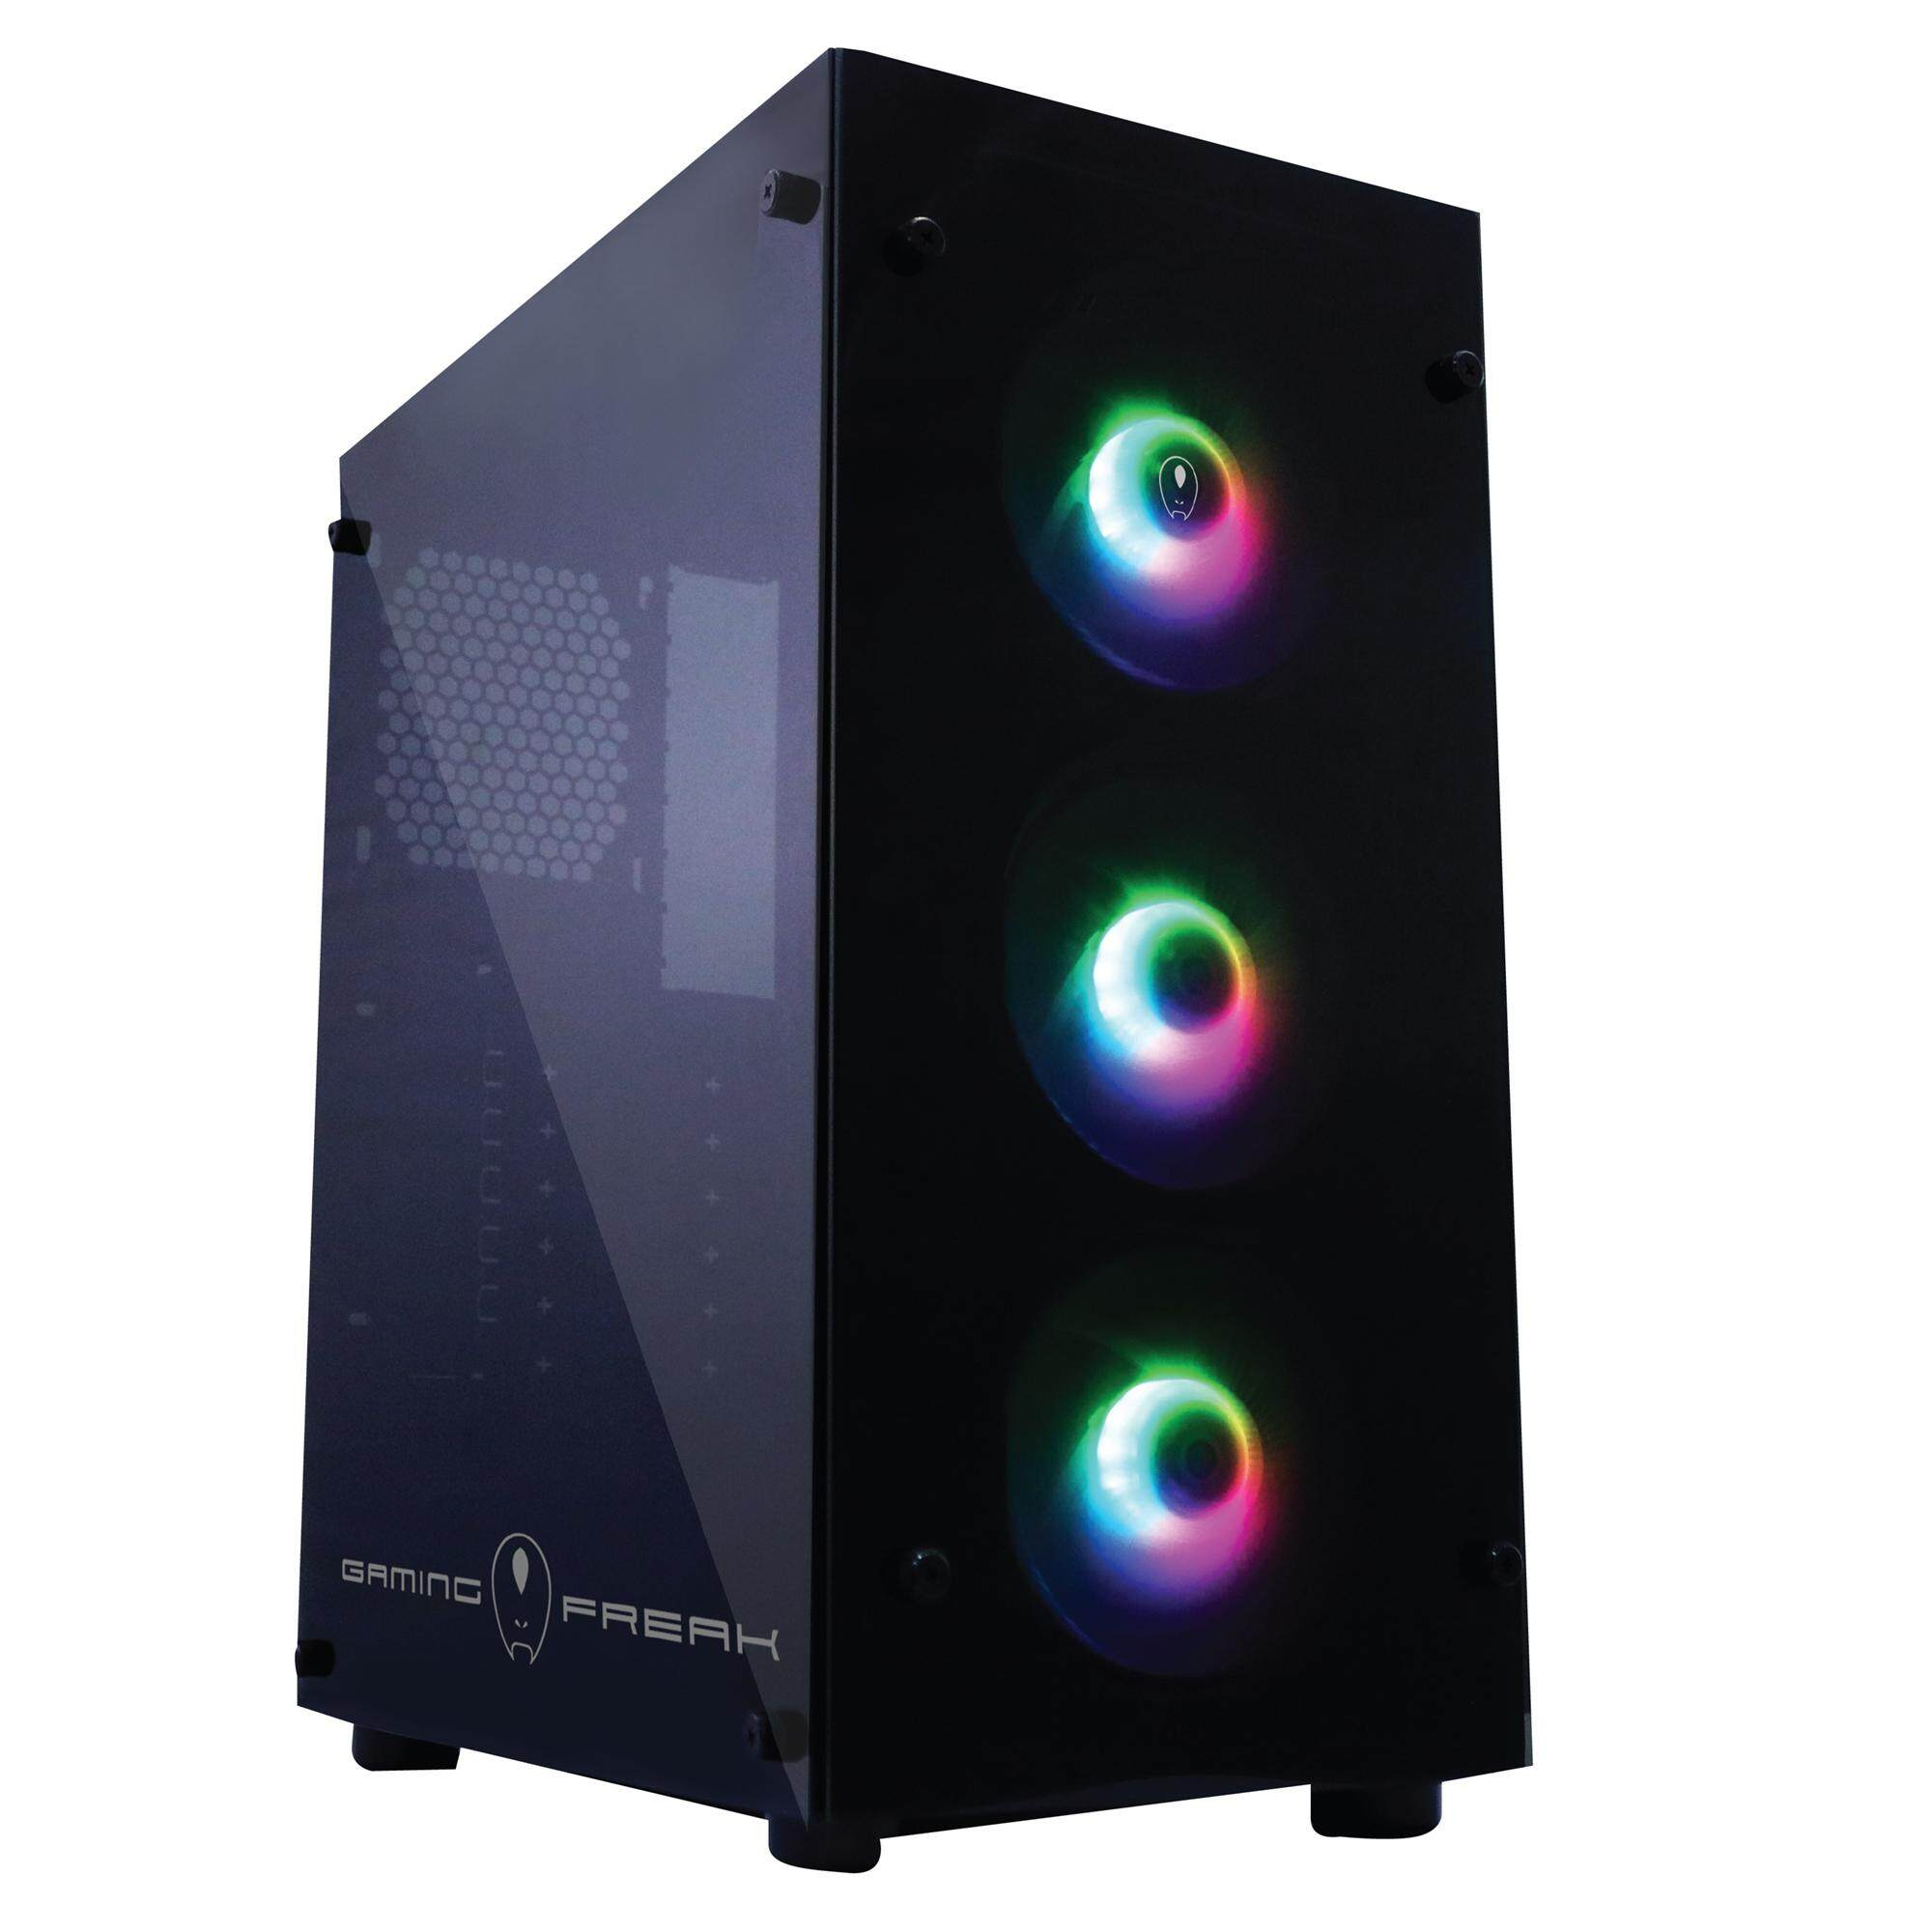 AVF GAMING FREAK 80G-GHOST. Gaming Tower Chassis. (Model No.: GFG-80G-GHOST) Malaysia